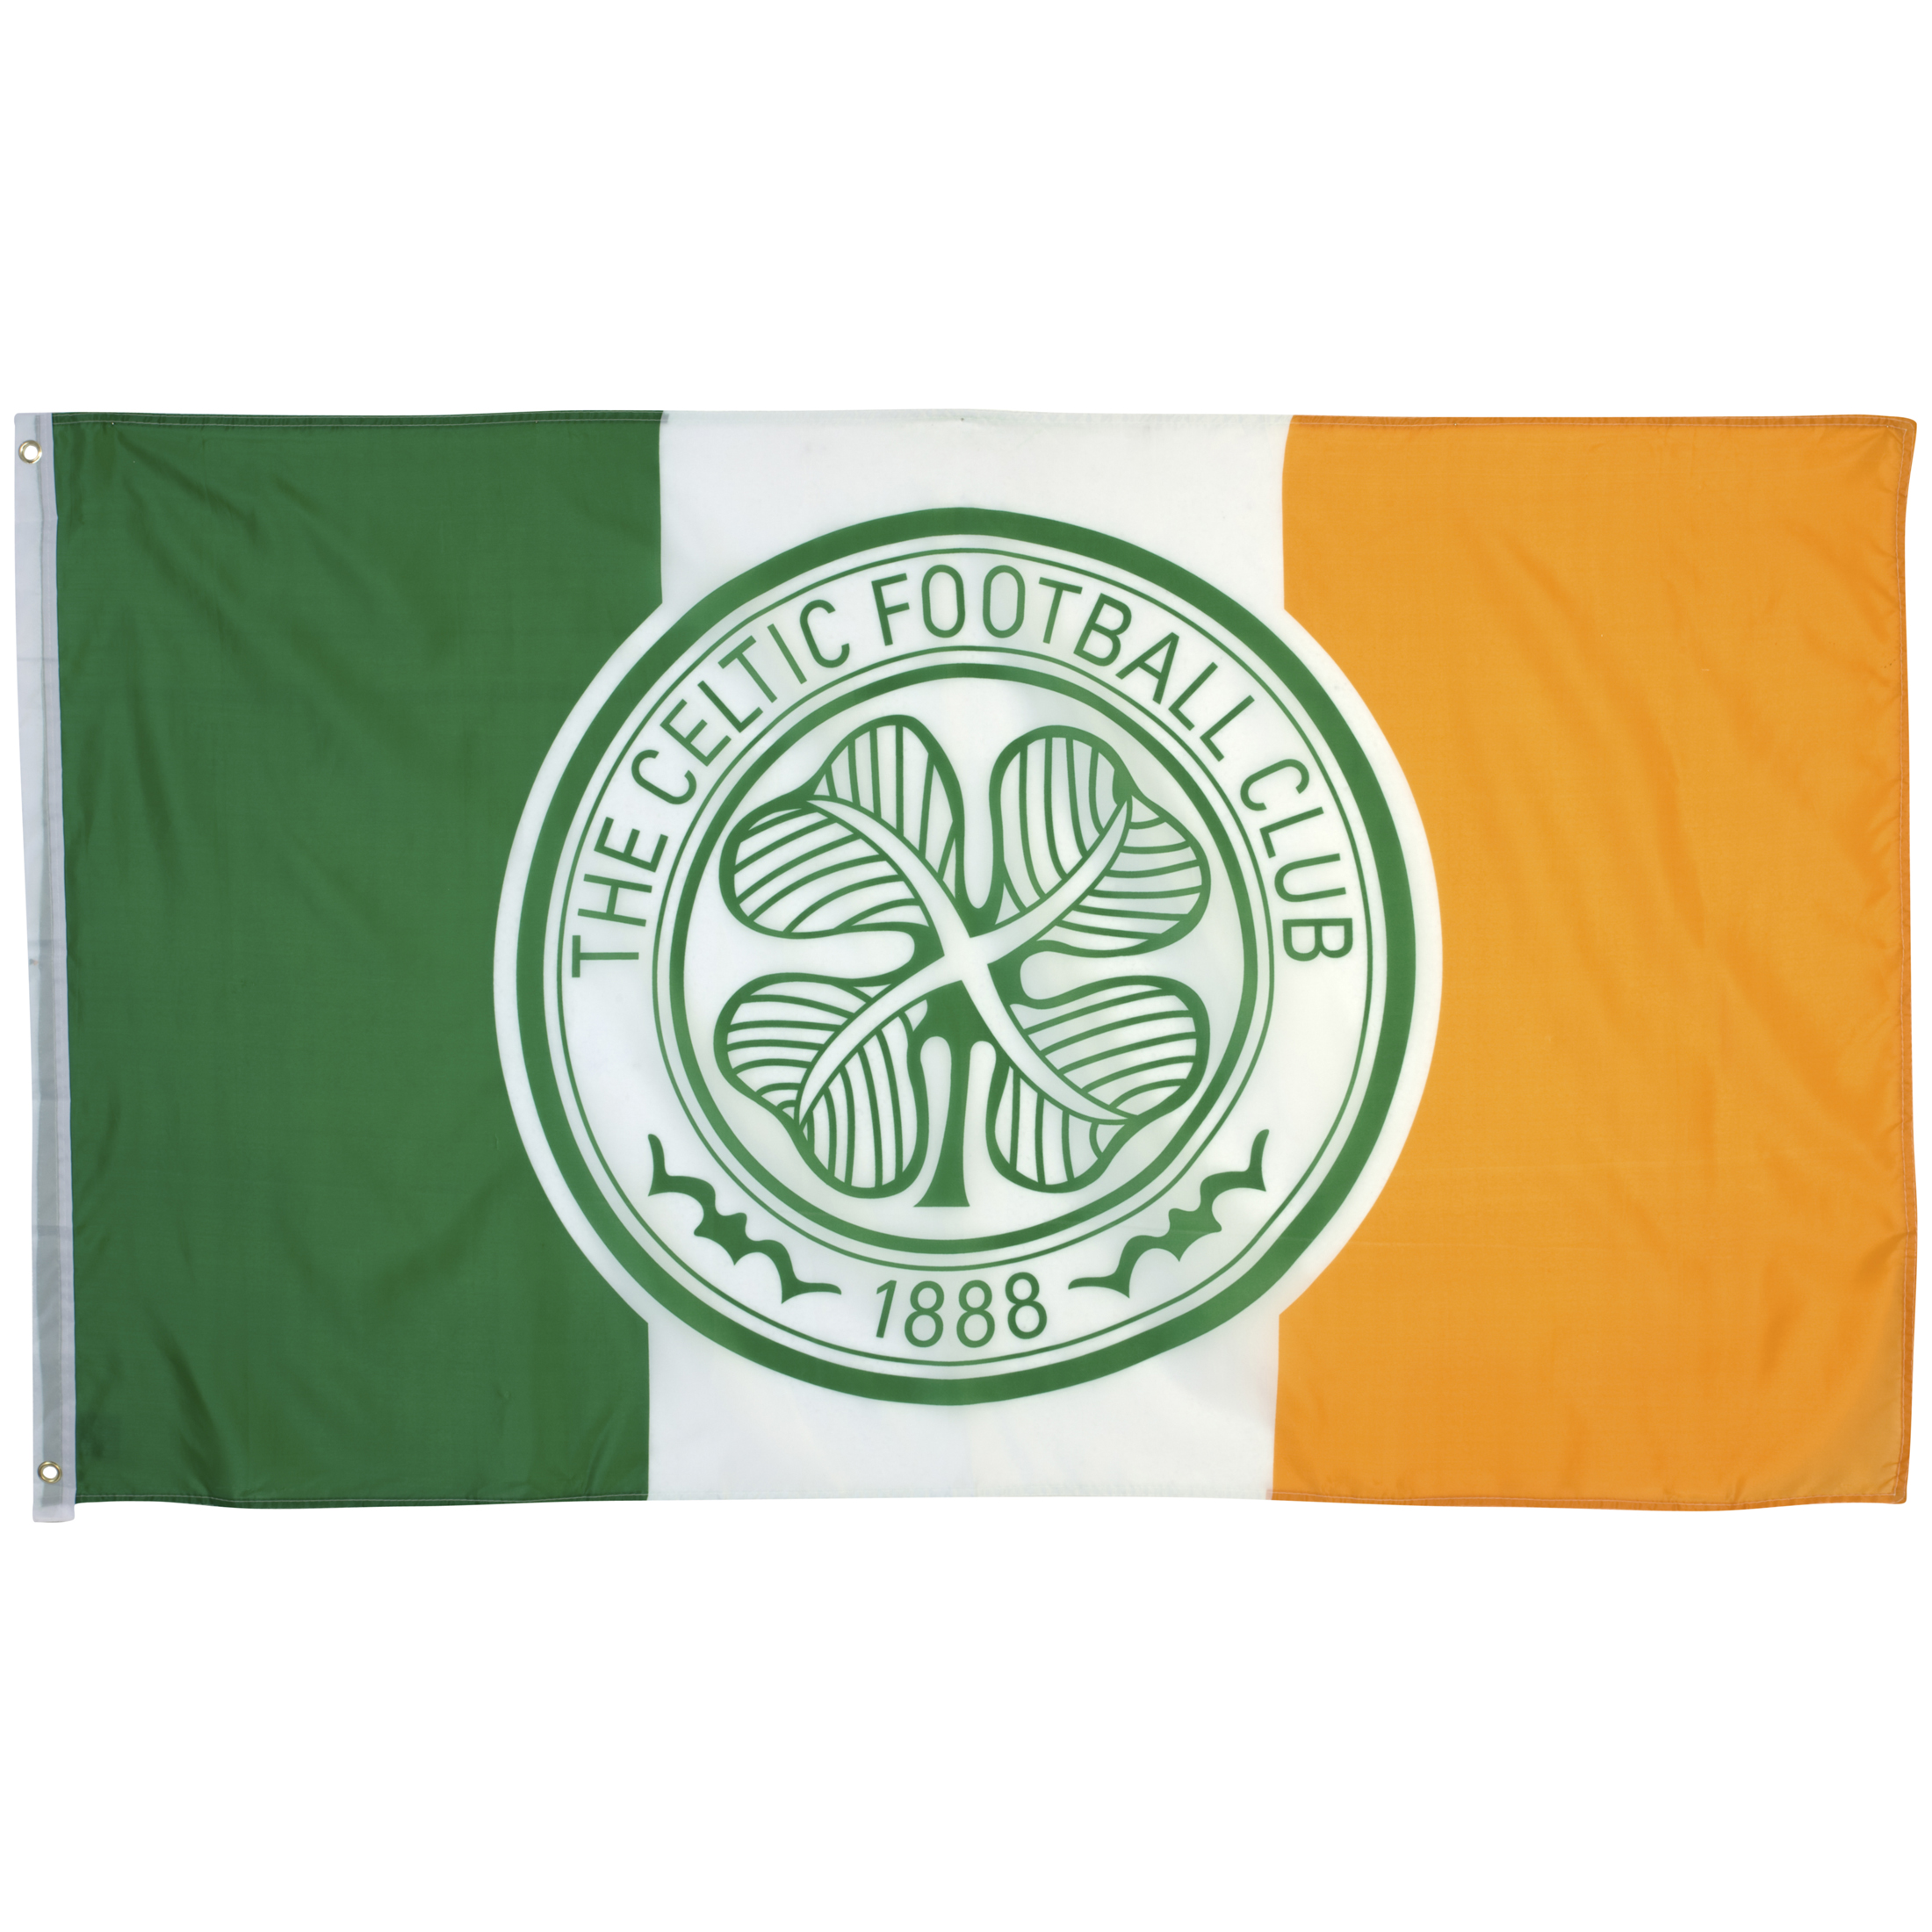 Celtic Home And Away Flag - 5 x 3